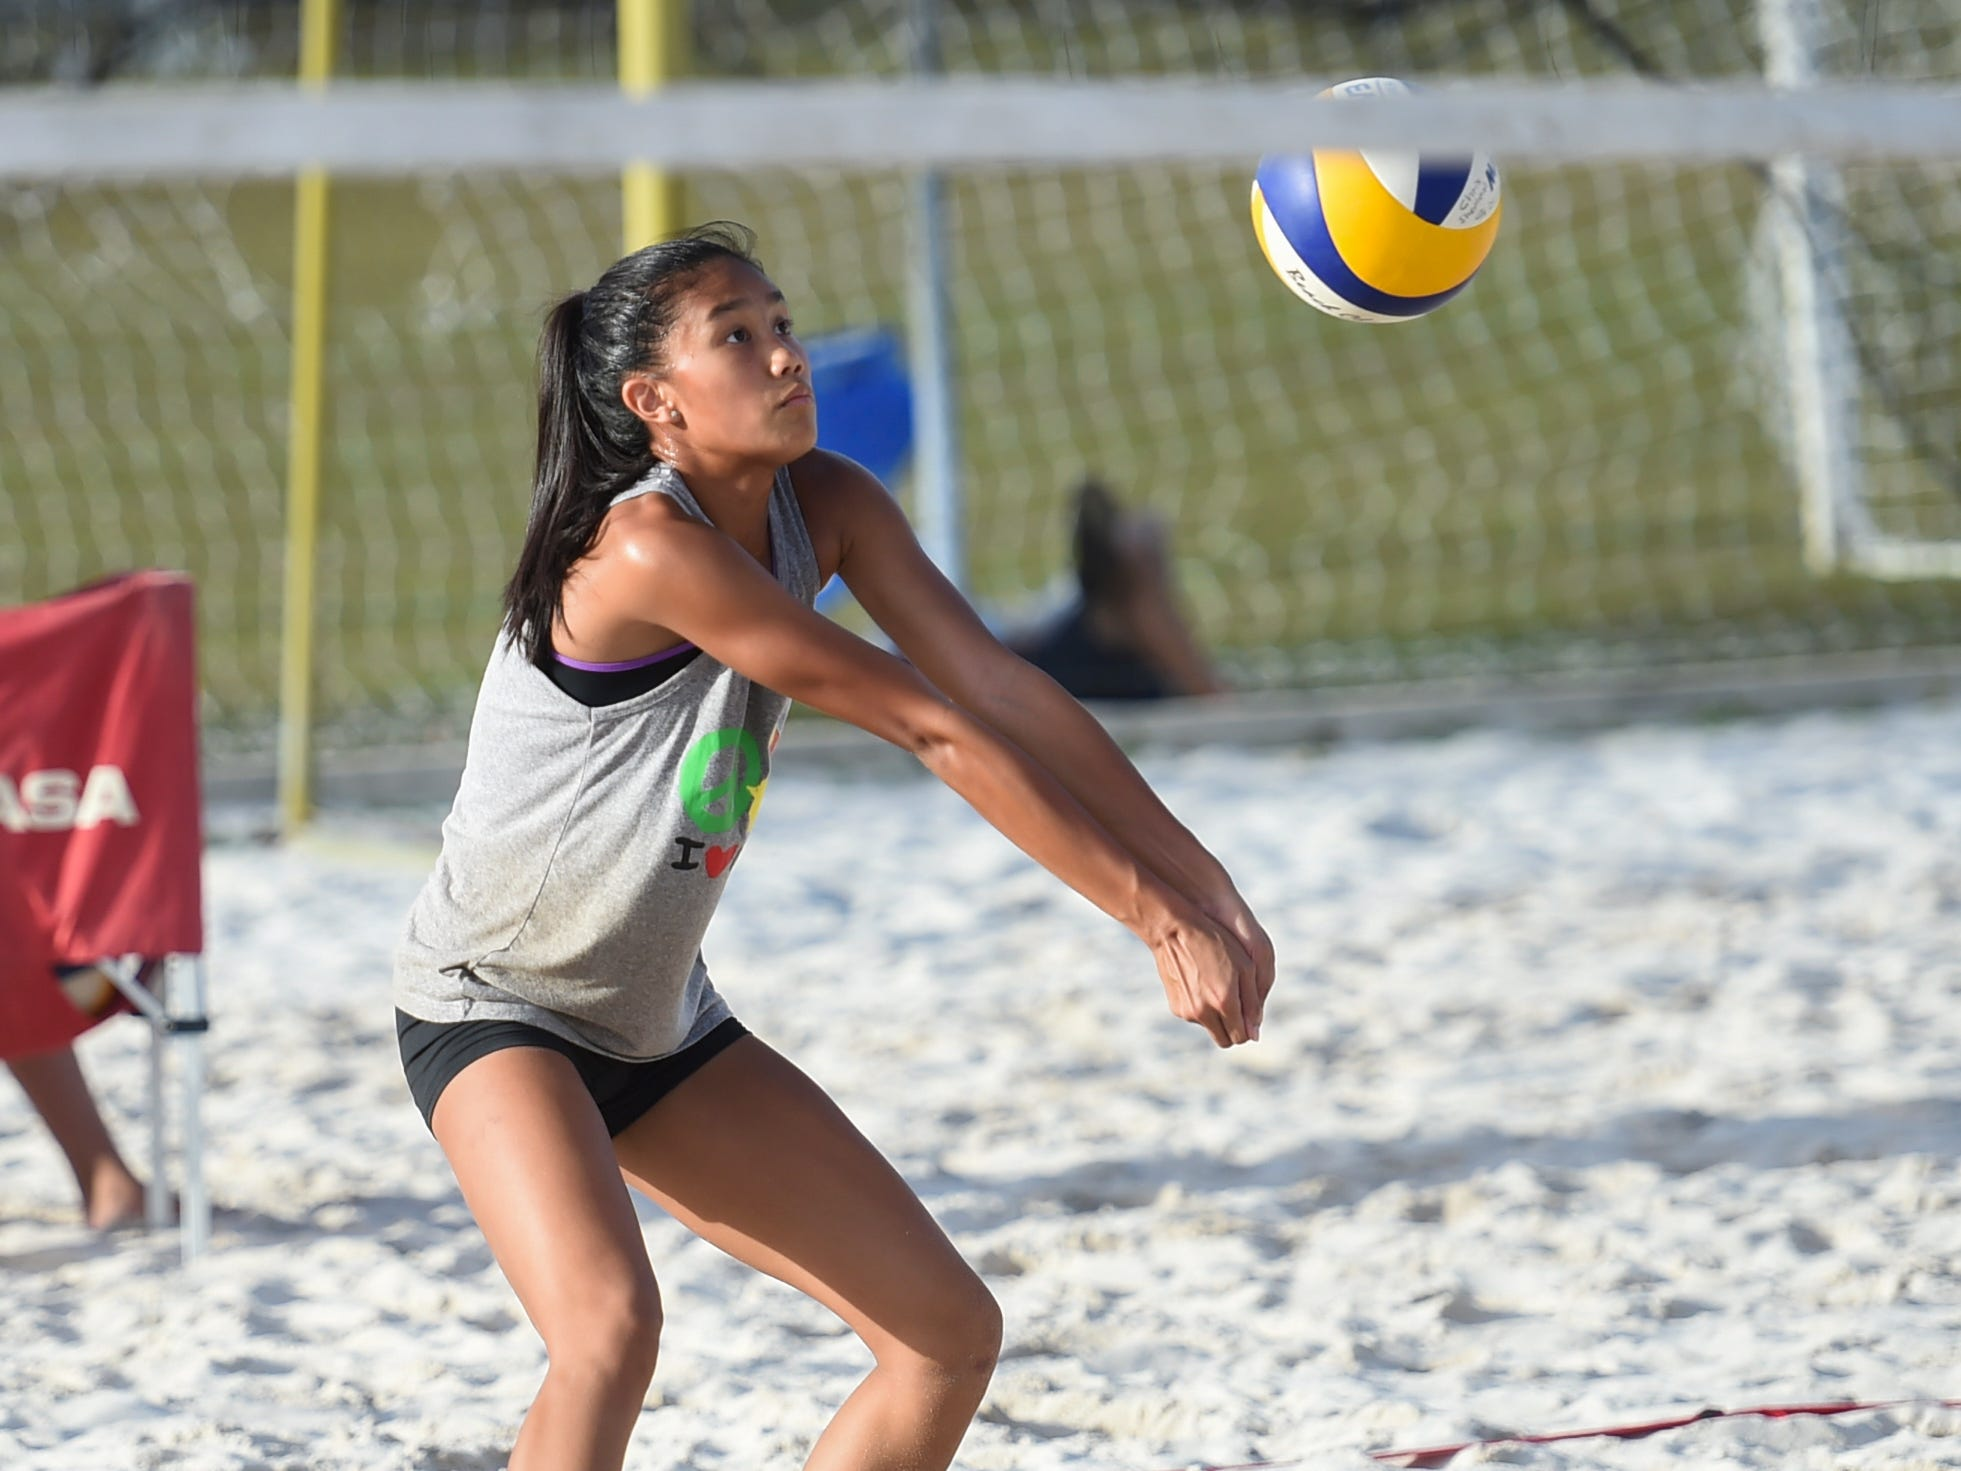 St. John's Knights White's Kristen Serrano positions to bump the ball during the IIAAG Beach Volleyball championship game at the Guam Football Association National Training Center in Dededo, March 12, 2019.